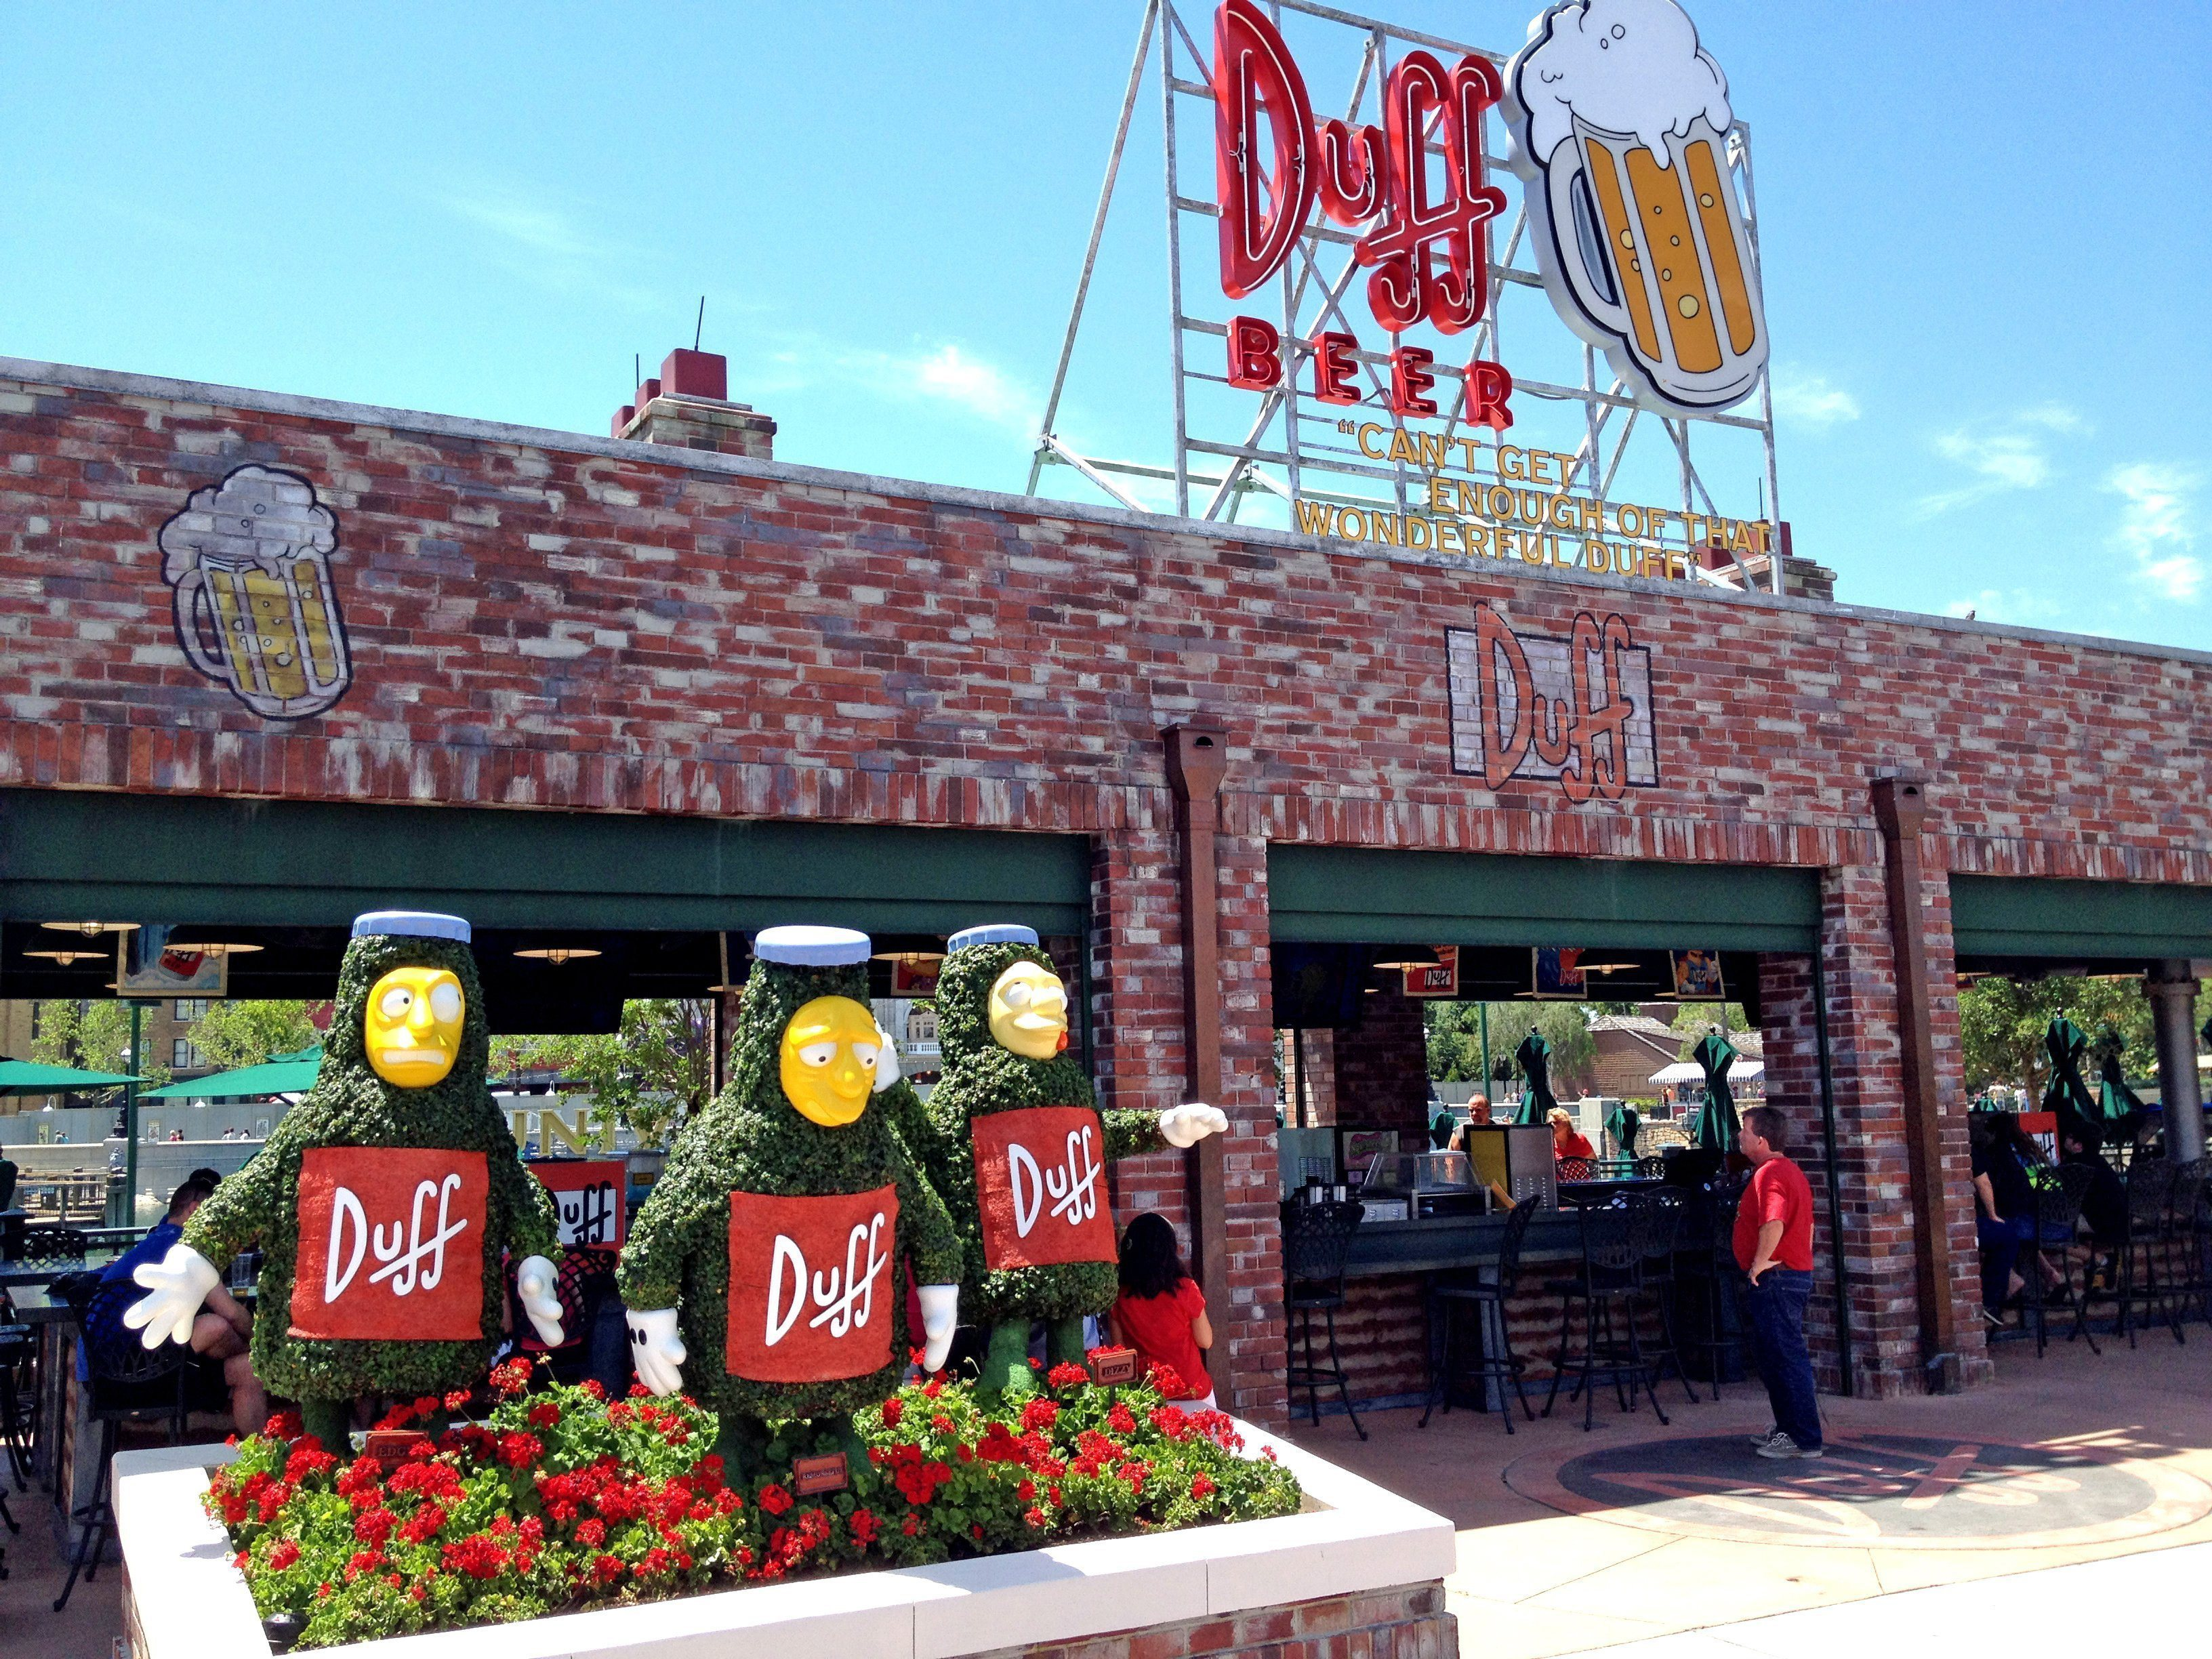 Homer's favorite Beer, Duff, is available at the 'brewery' in the Springfield area of Universal Studios in Orlando, Fla.